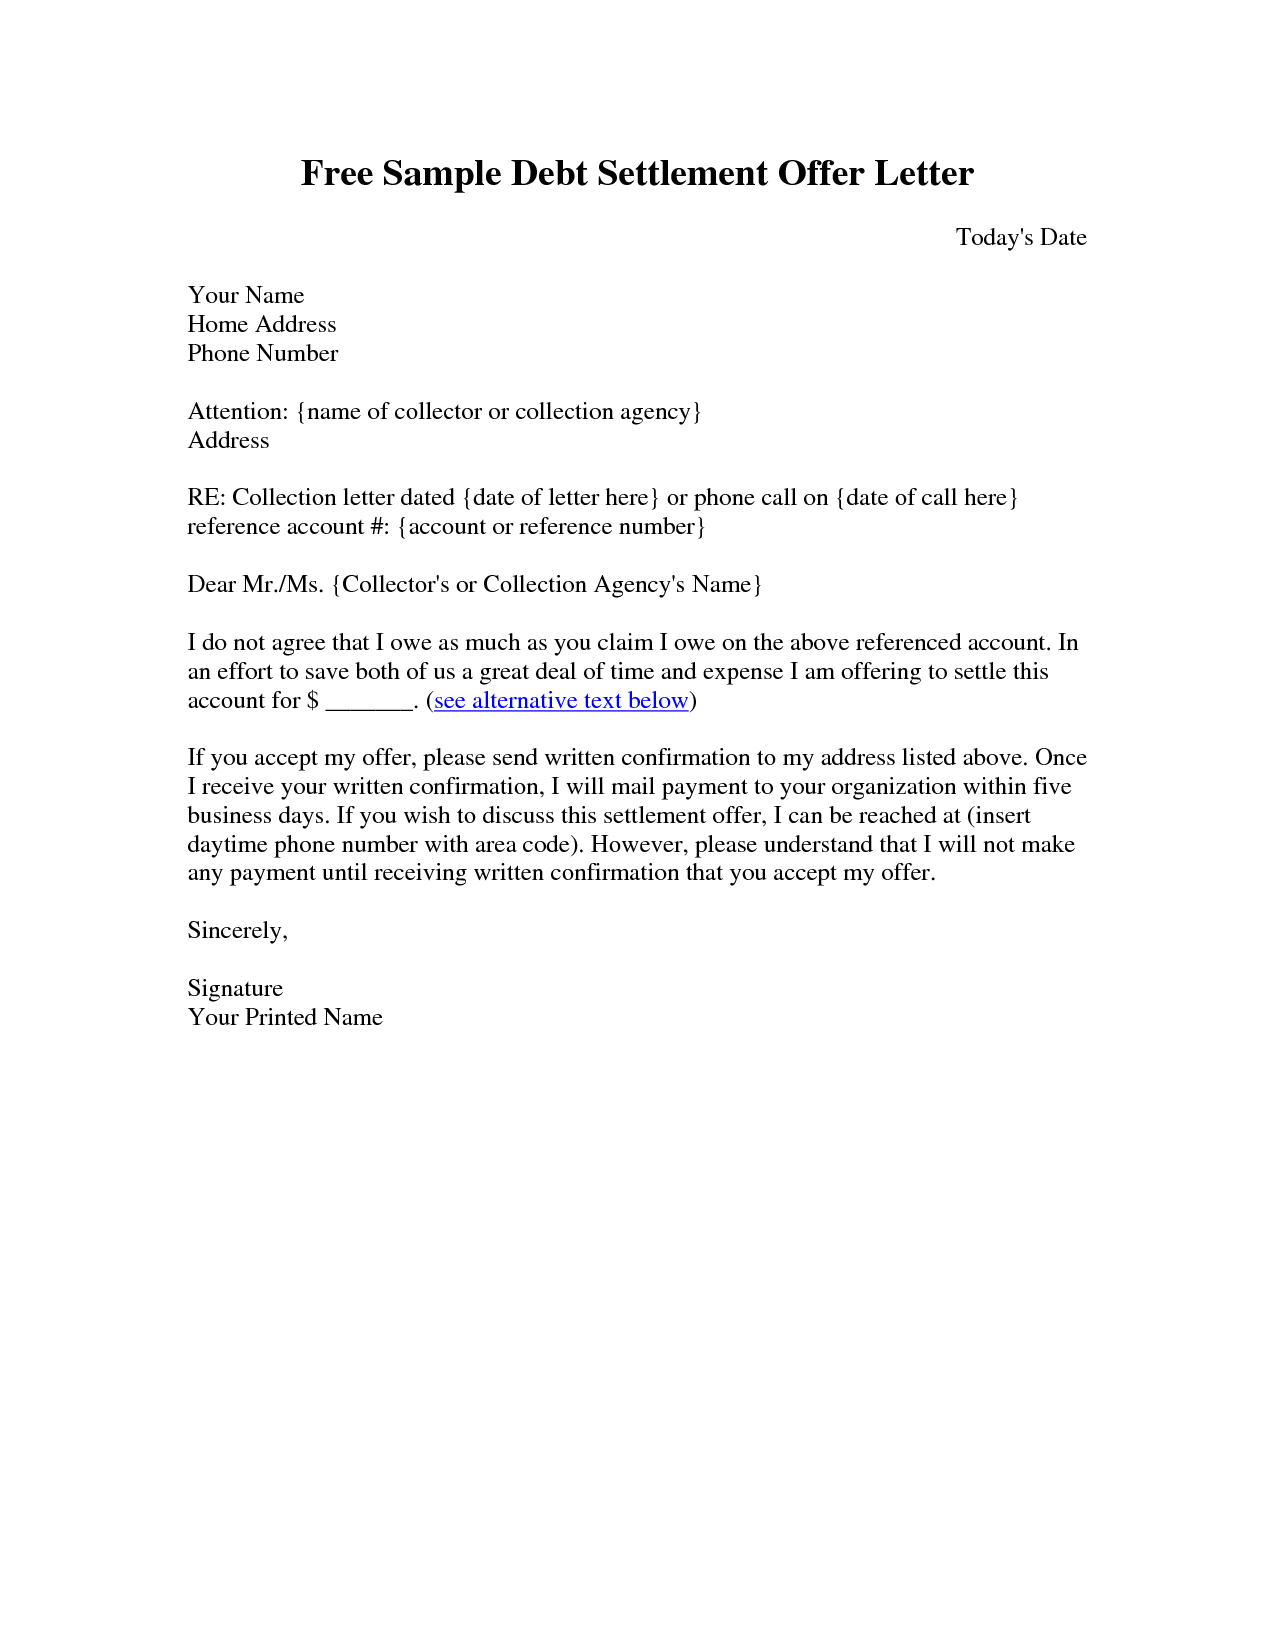 Sample Settlement Letter Resume Template For Graduate School Debt